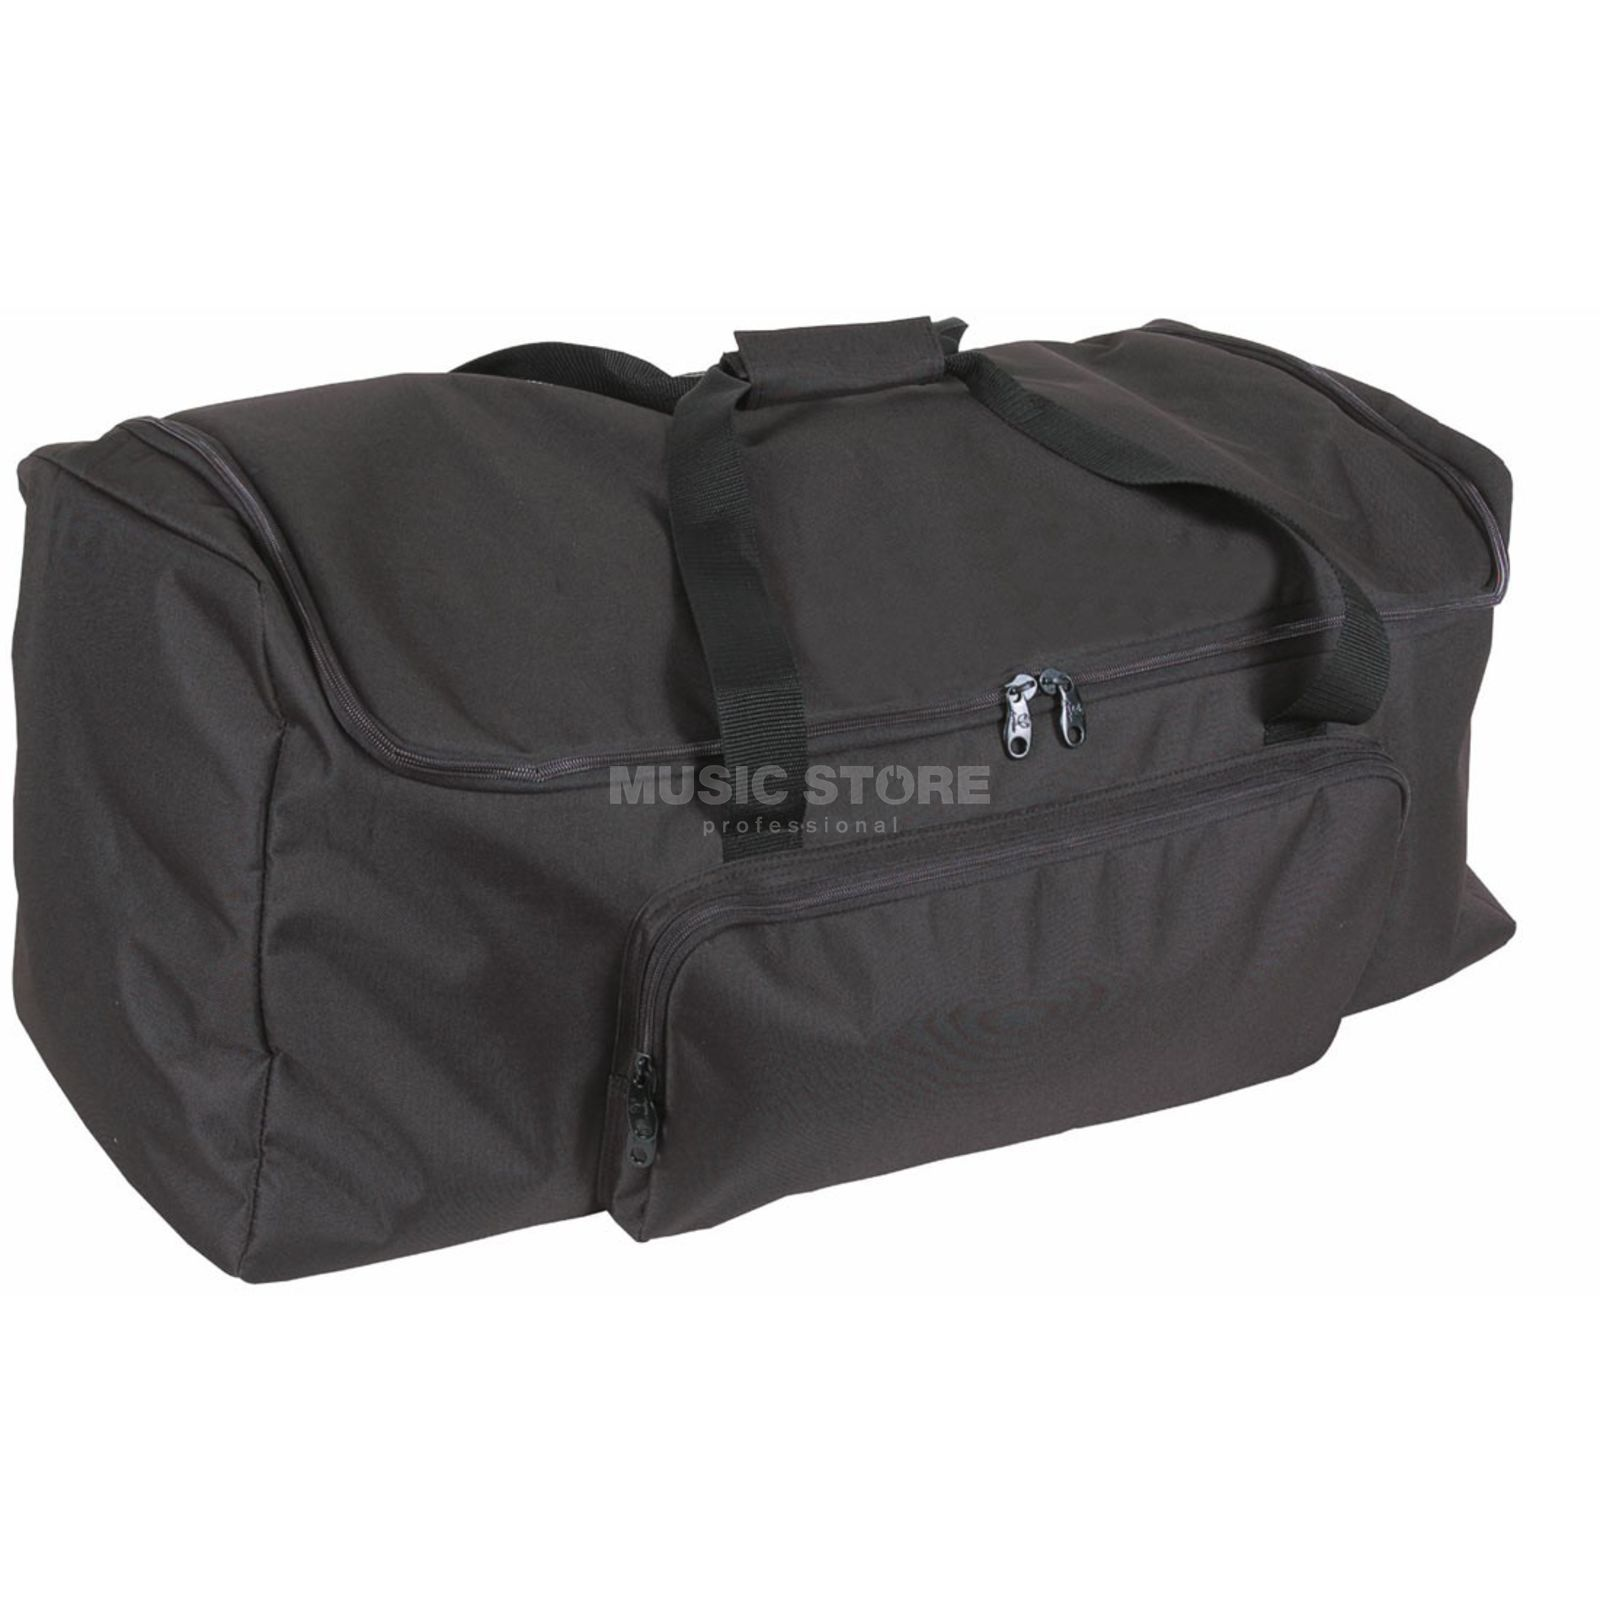 Accu Case ASC-AC-144 Transport Bag 740 x 330 x 315 mm Produktbillede